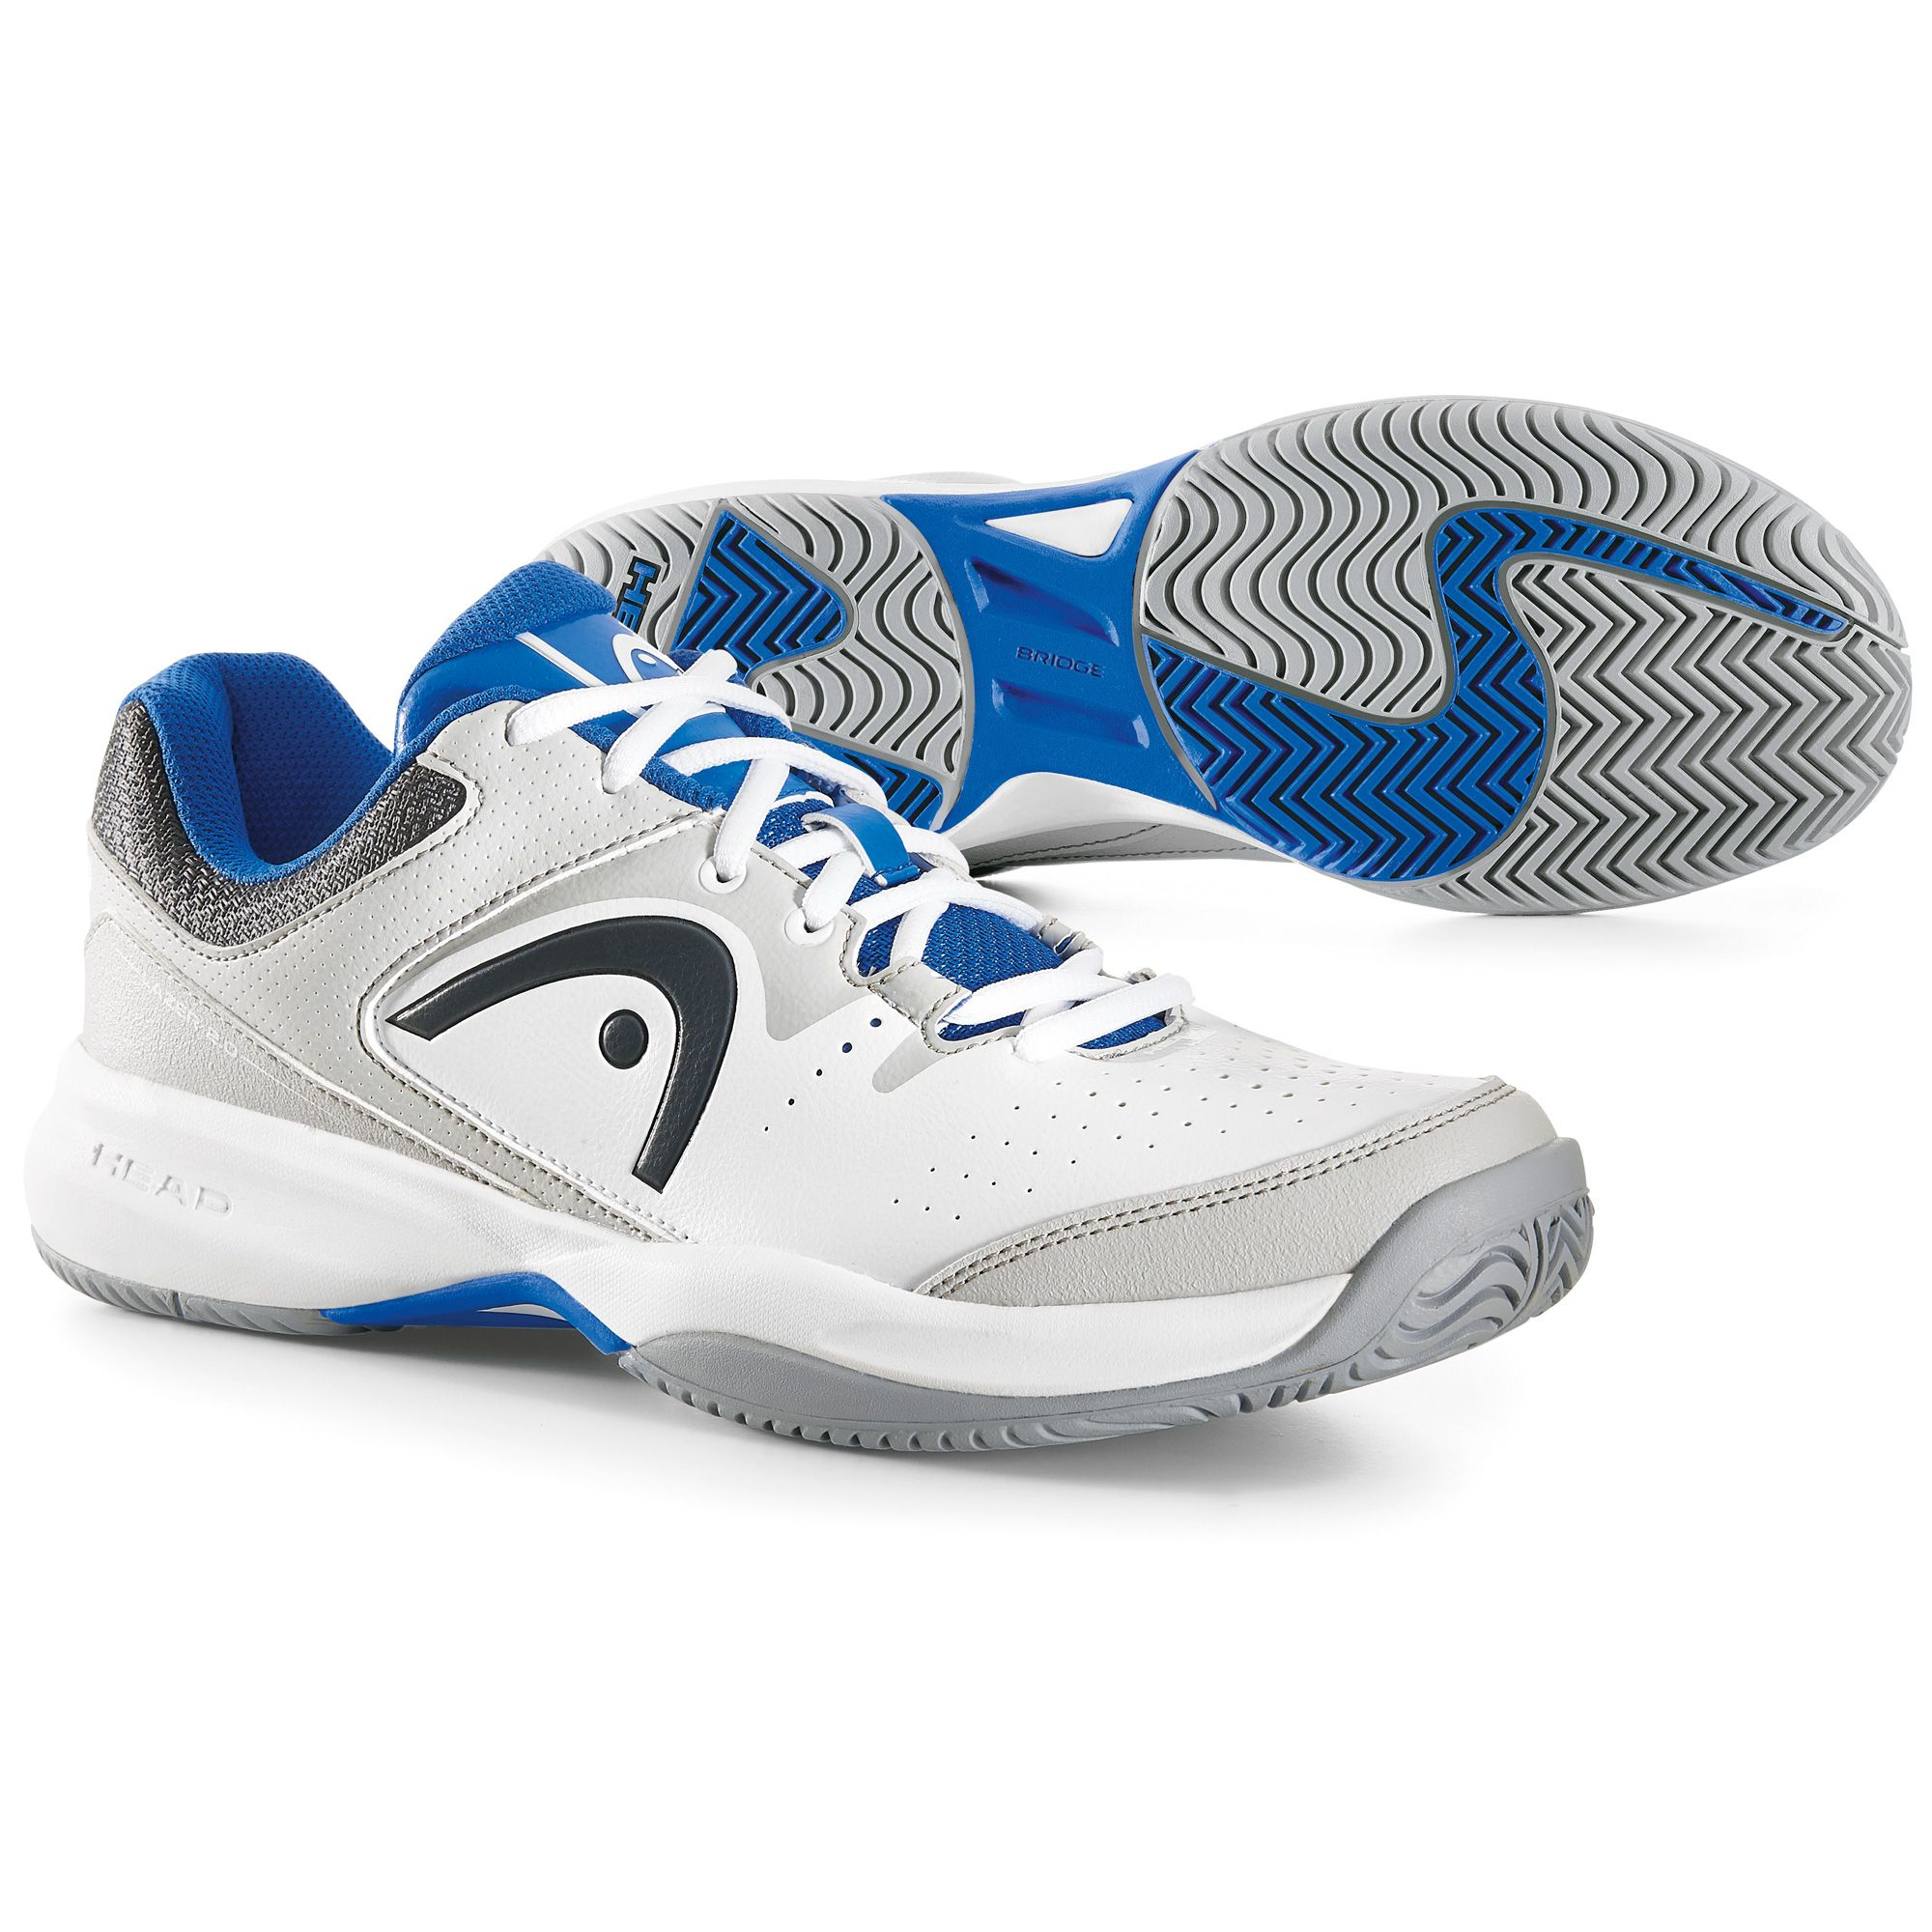 Mens Tennis Shoes Sports Authority